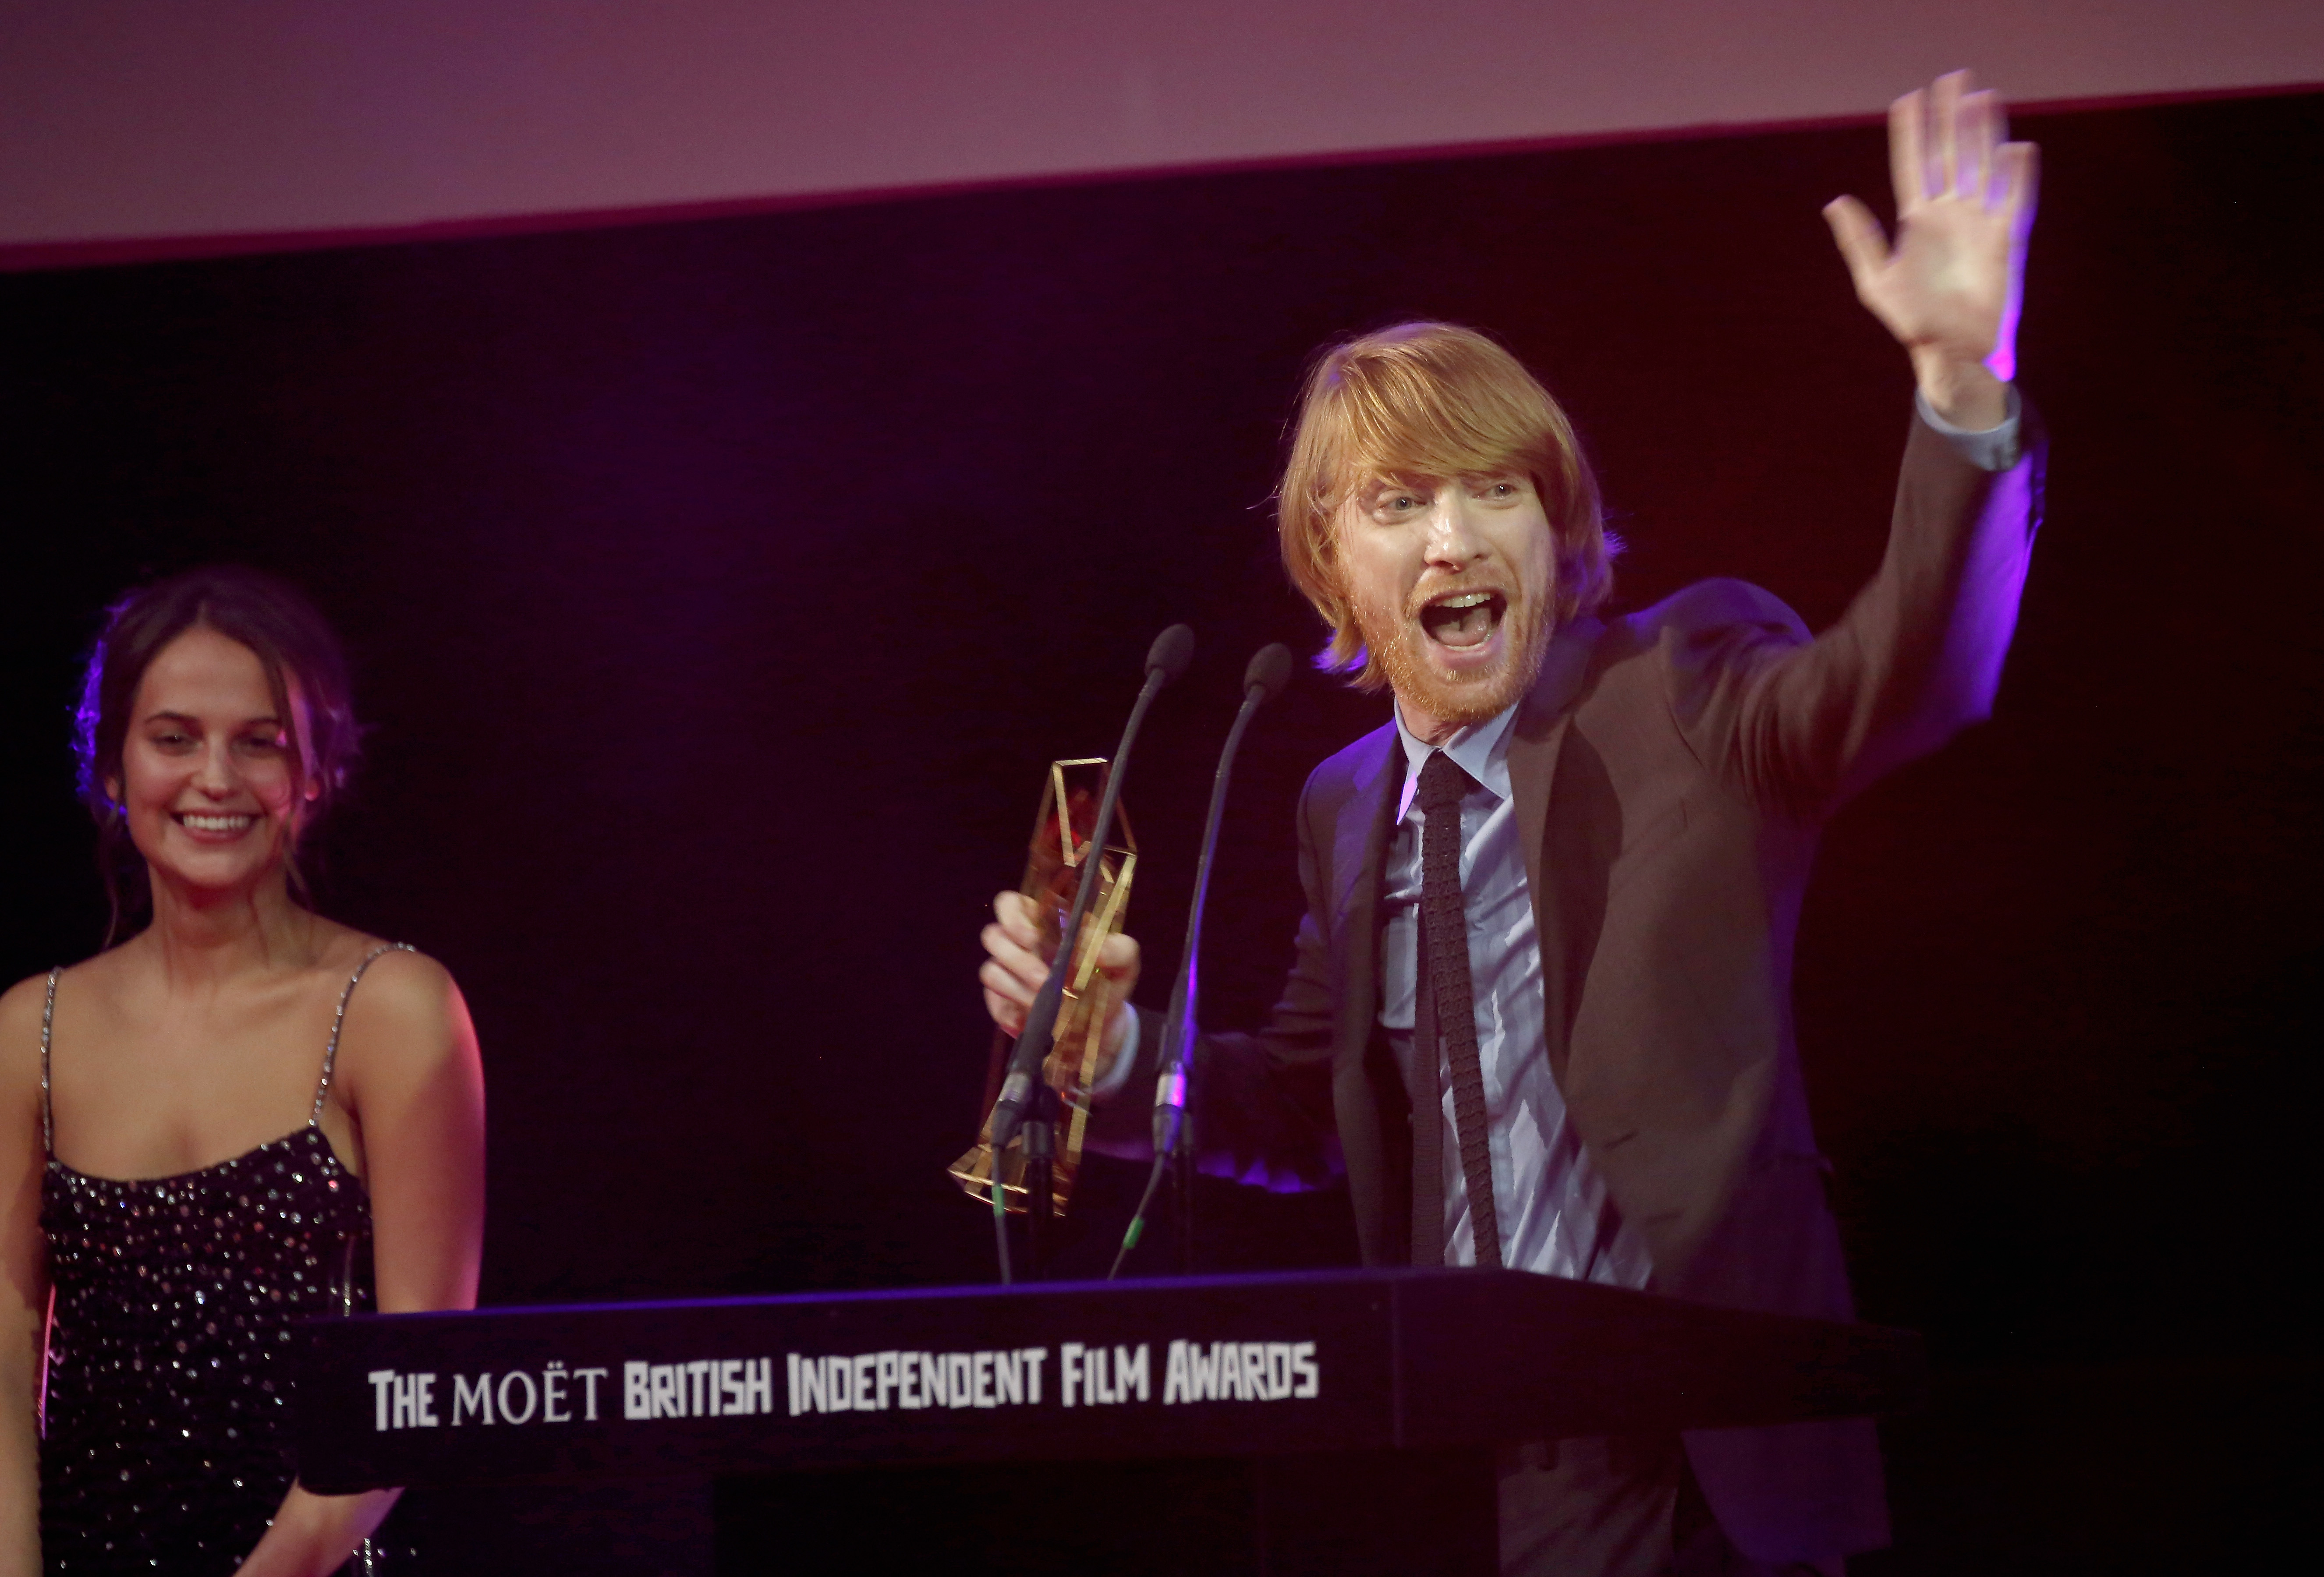 LONDON, ENGLAND - DECEMBER 06: Actress Alicia Vikander (L) and actor Domhnall Gleeson on stage as he accepts the award for Best Supporting Actor on behalf of his father Brendan Gleeson for his role in the film 'Brooklyn' at The Moet British Independent Film Awards 2015 on December 6, 2015 in London, United Kingdom. (Photo by John Phillips/Getty Images for The Moet British Independent Film Awards)